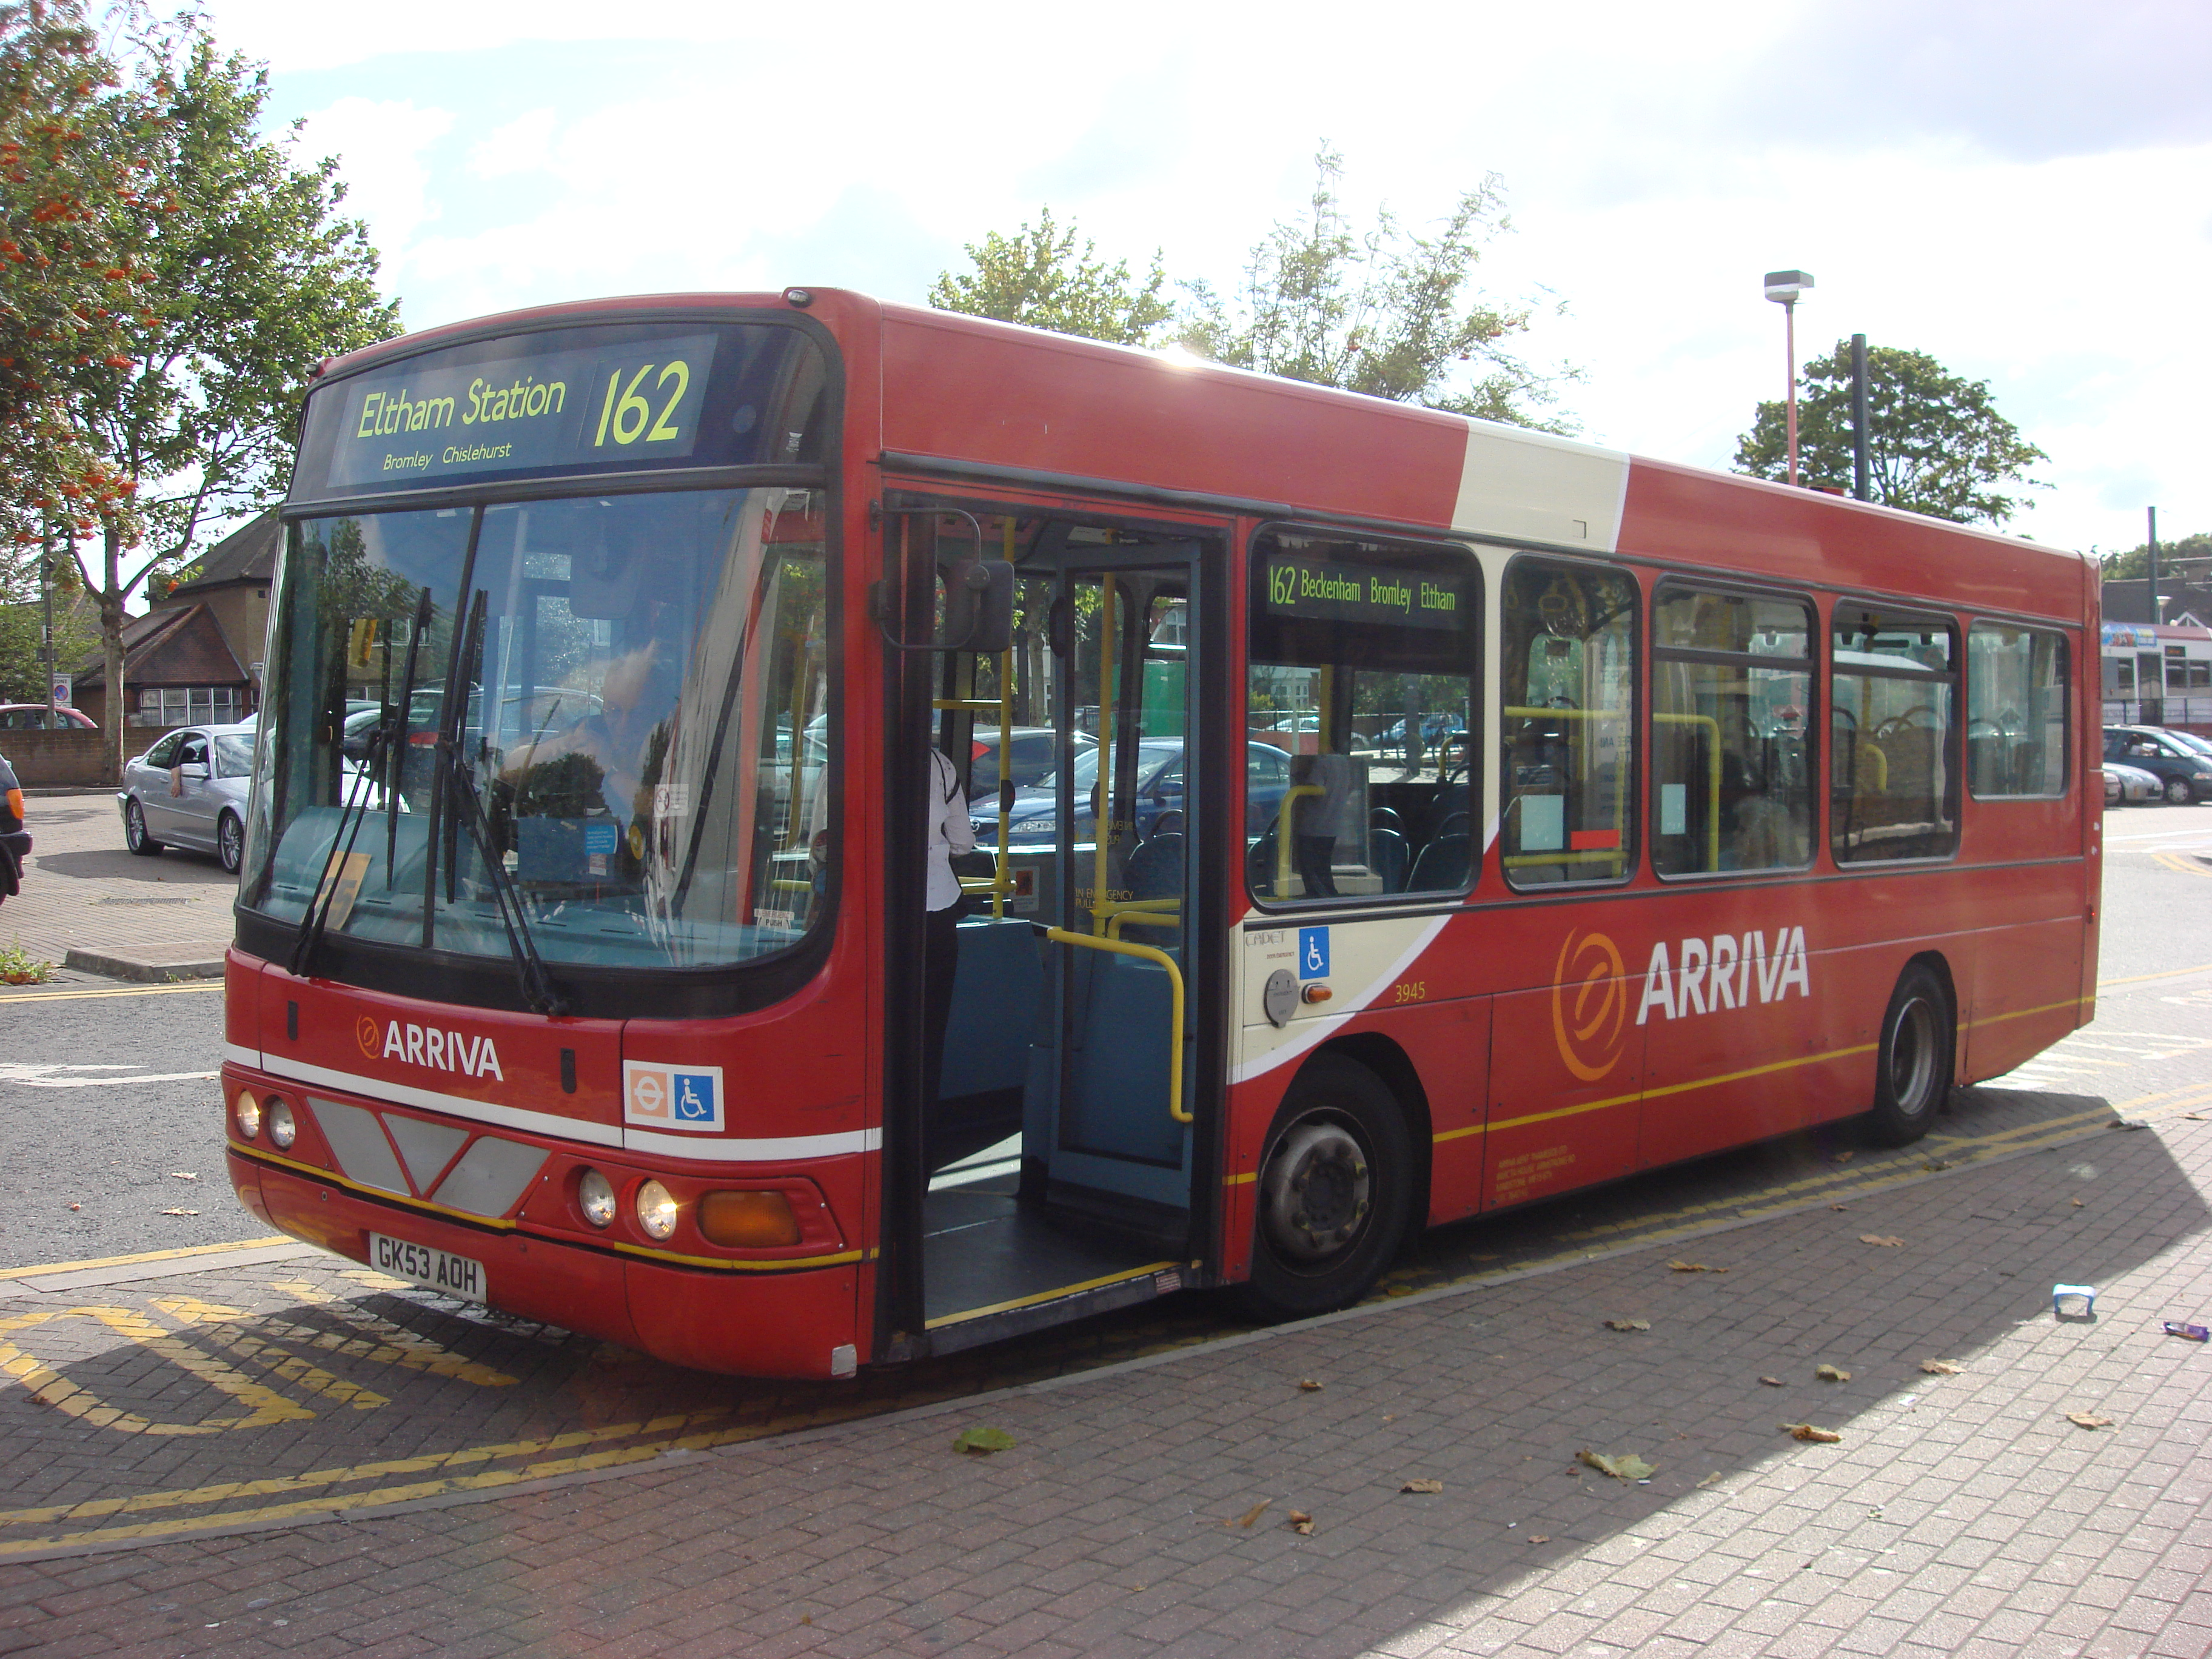 file:london bus route 162 - wikimedia commons